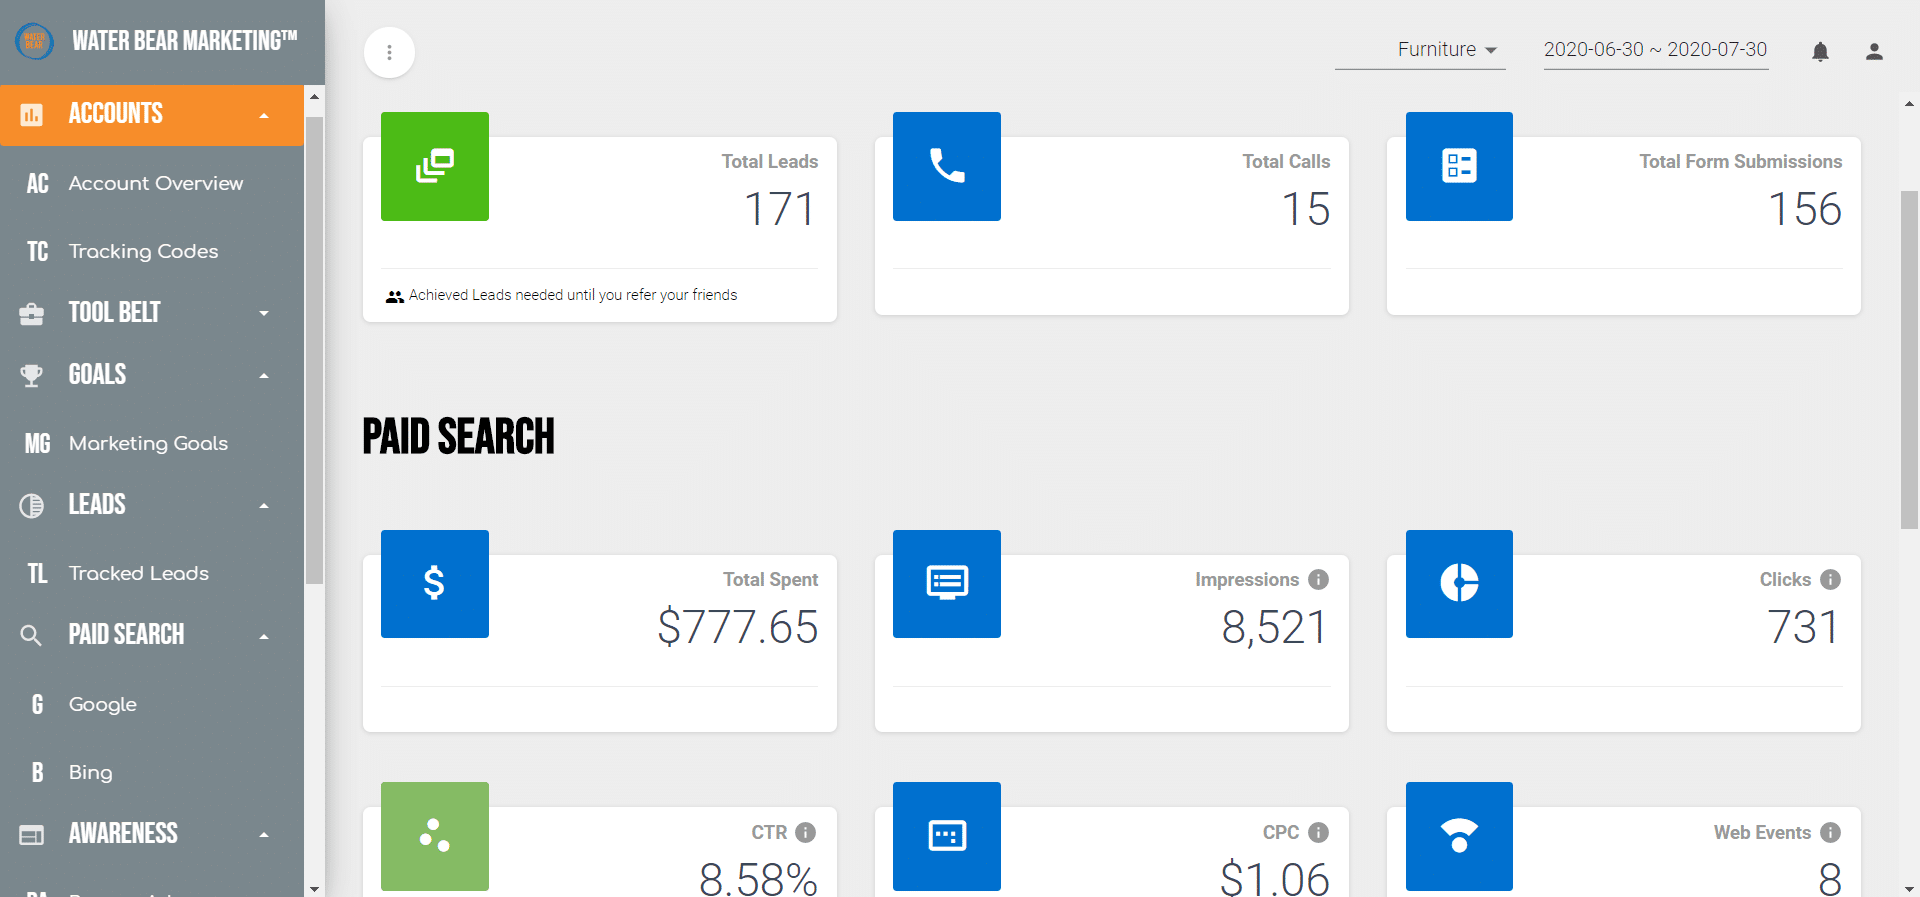 Water Bear Marketing™ dashboard client results